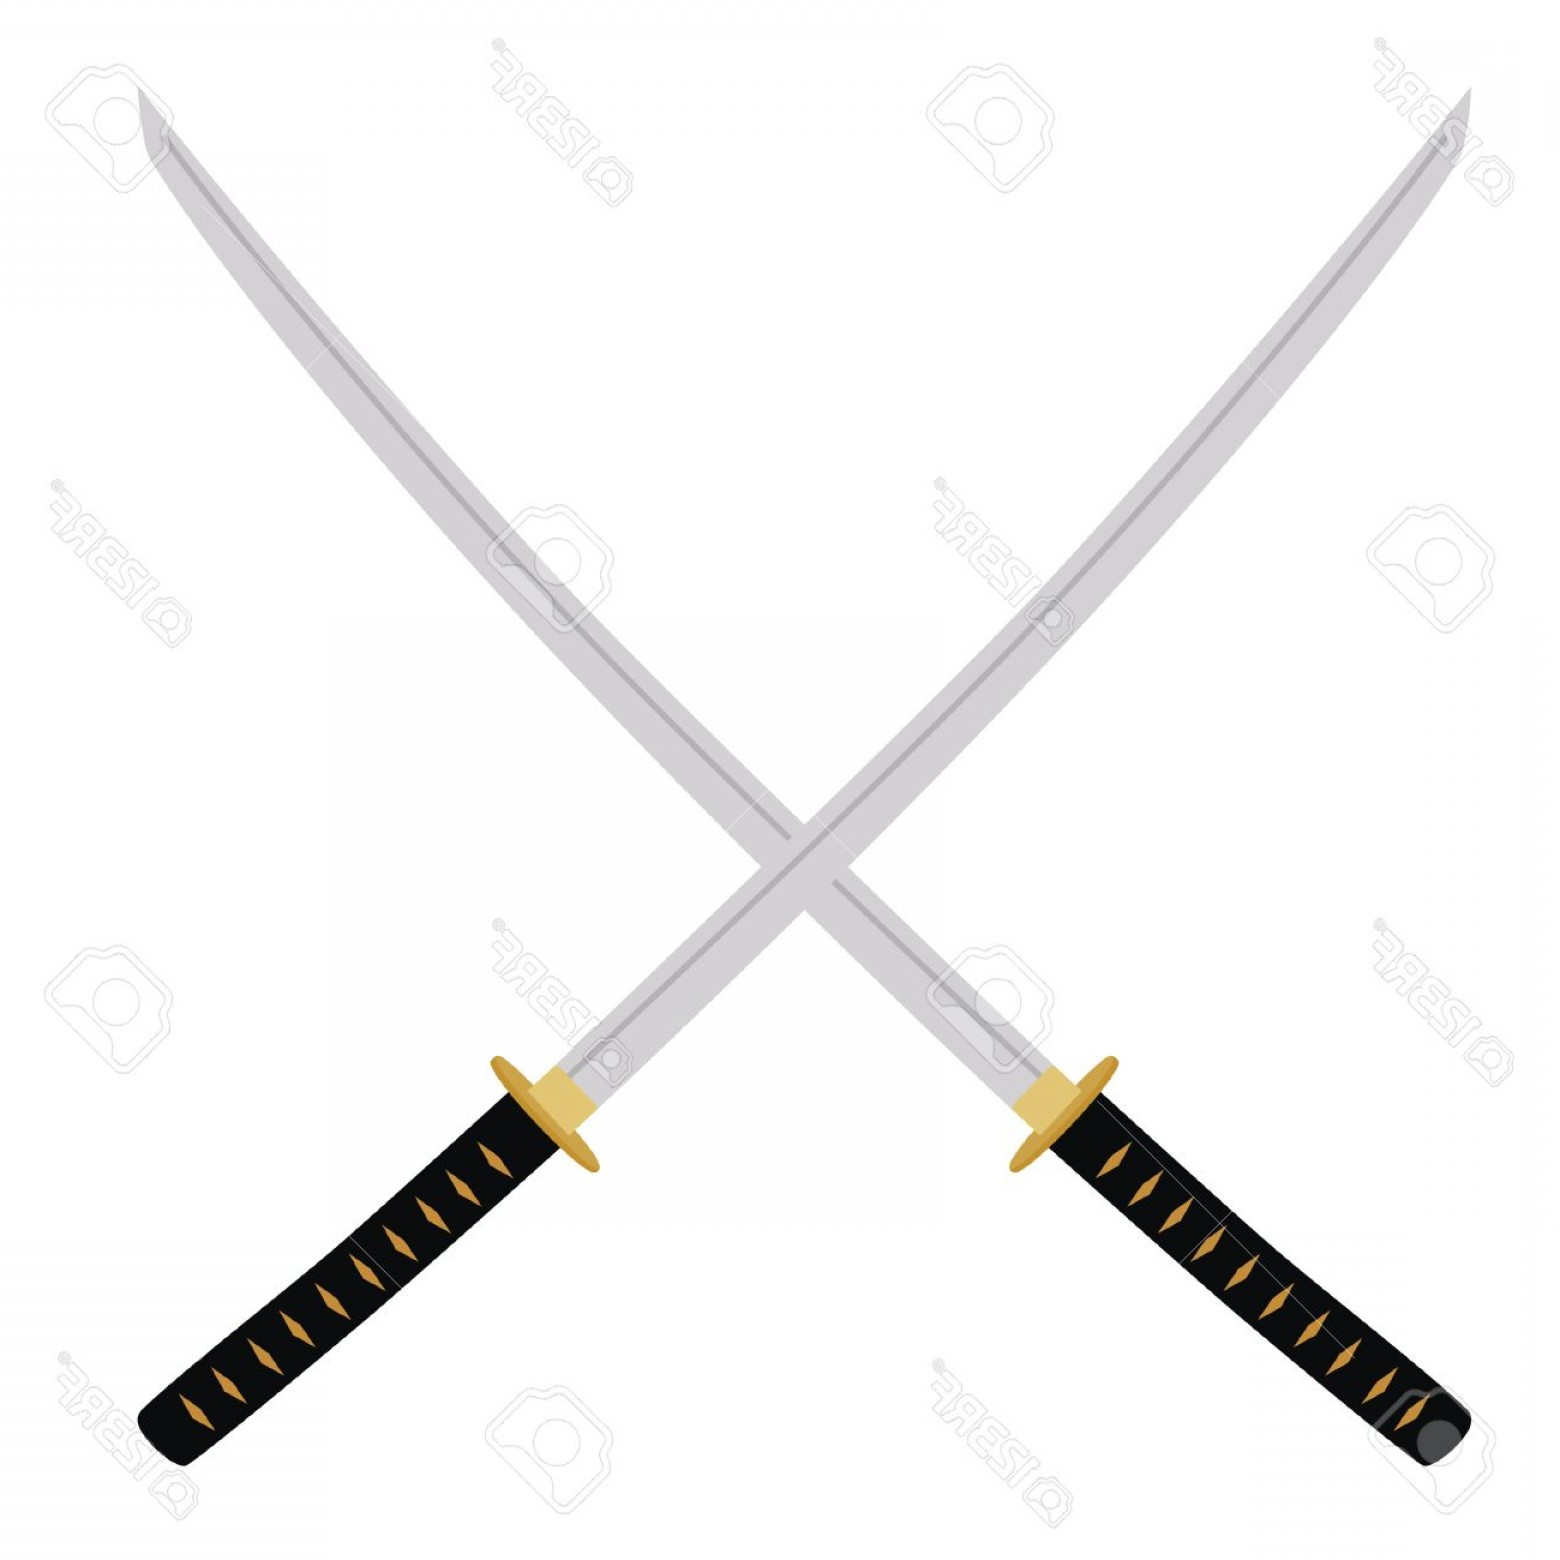 Samuri Sword Vector: Photostock Vector Two Crossed Katana Swords Vector Illustration Samurai Sword Traditional Asian Ninja Weapon